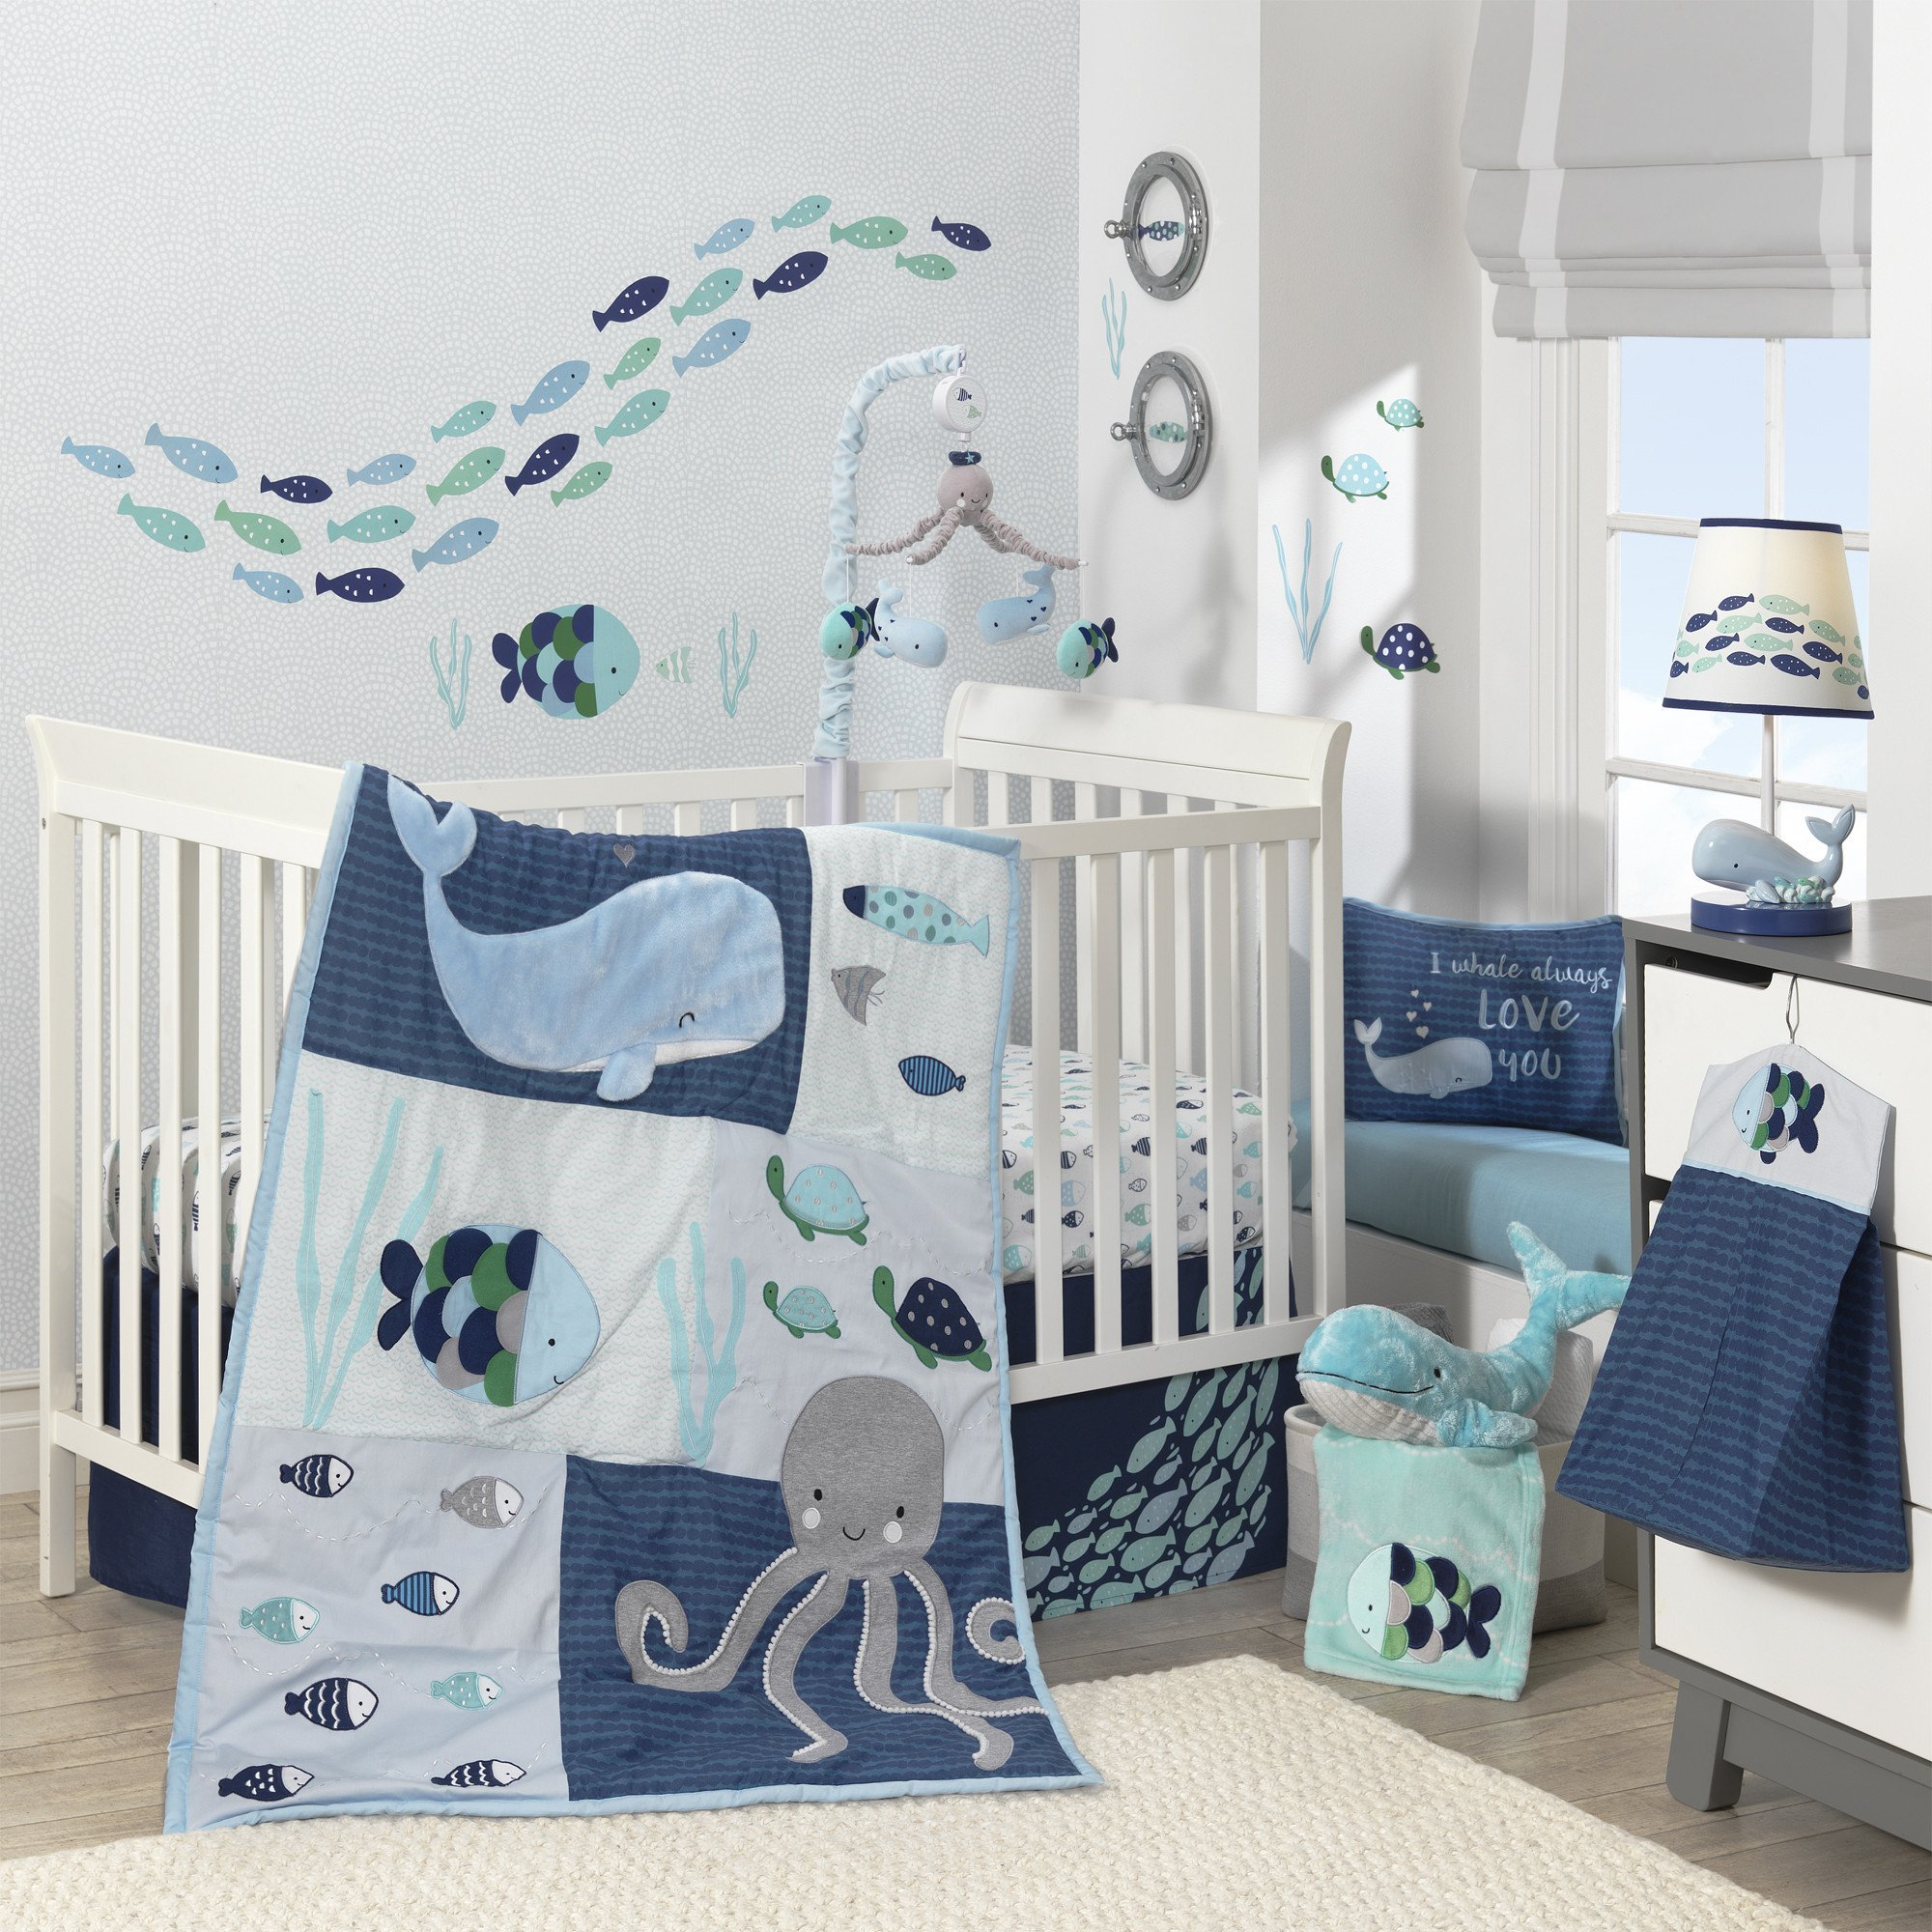 Lambs & Ivy Oceania 6-Piece Baby Crib Bedding Set - Blue Ocean Whale & Octopus Theme